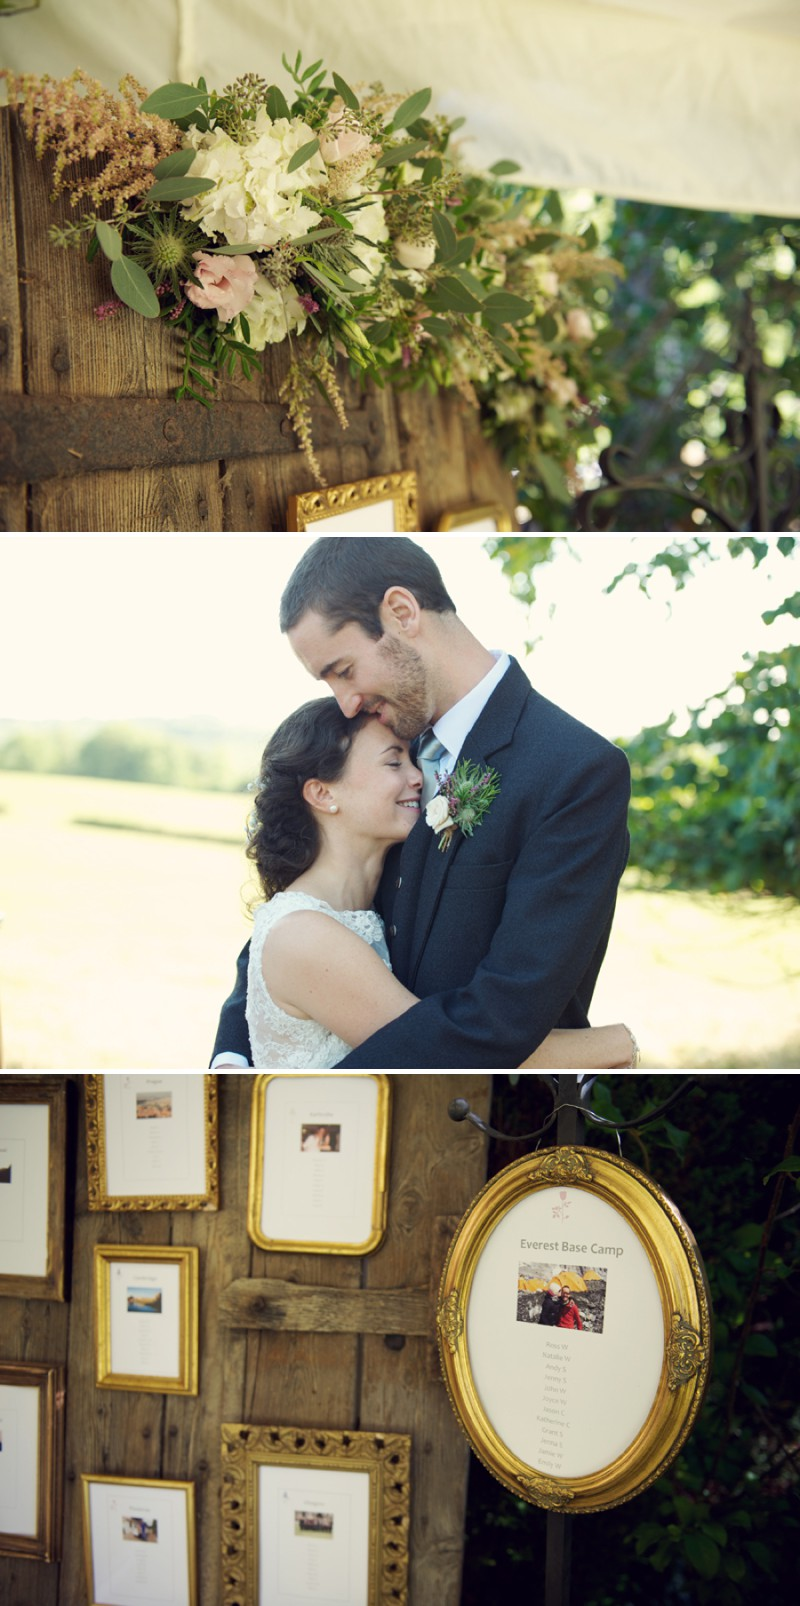 A Rustic Scottish And English Themed Woodland Wedding In Surrey With A Lusan Mandongus Dress And A Thistle And Pink Rose Bouquet Photographed by Rebecca Douglas._0009